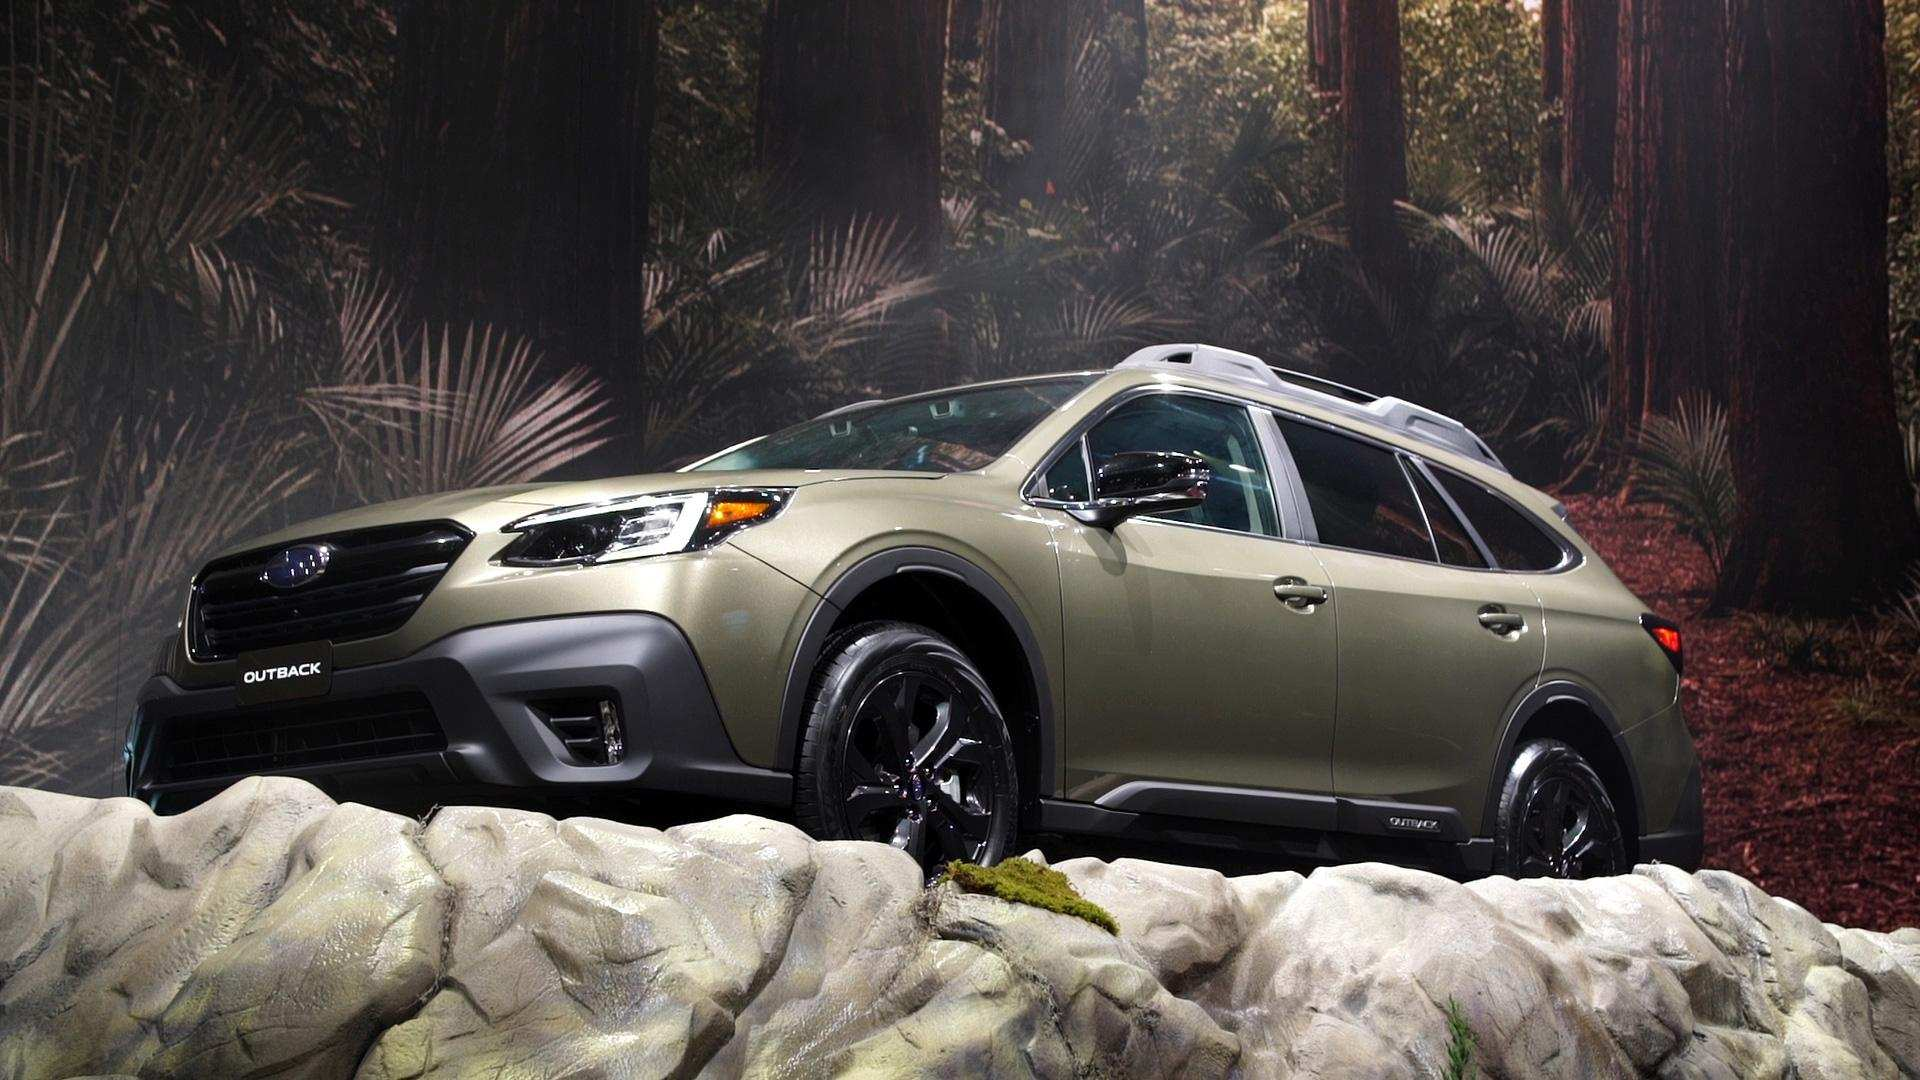 73 A Subaru Outback 2020 New York Pictures